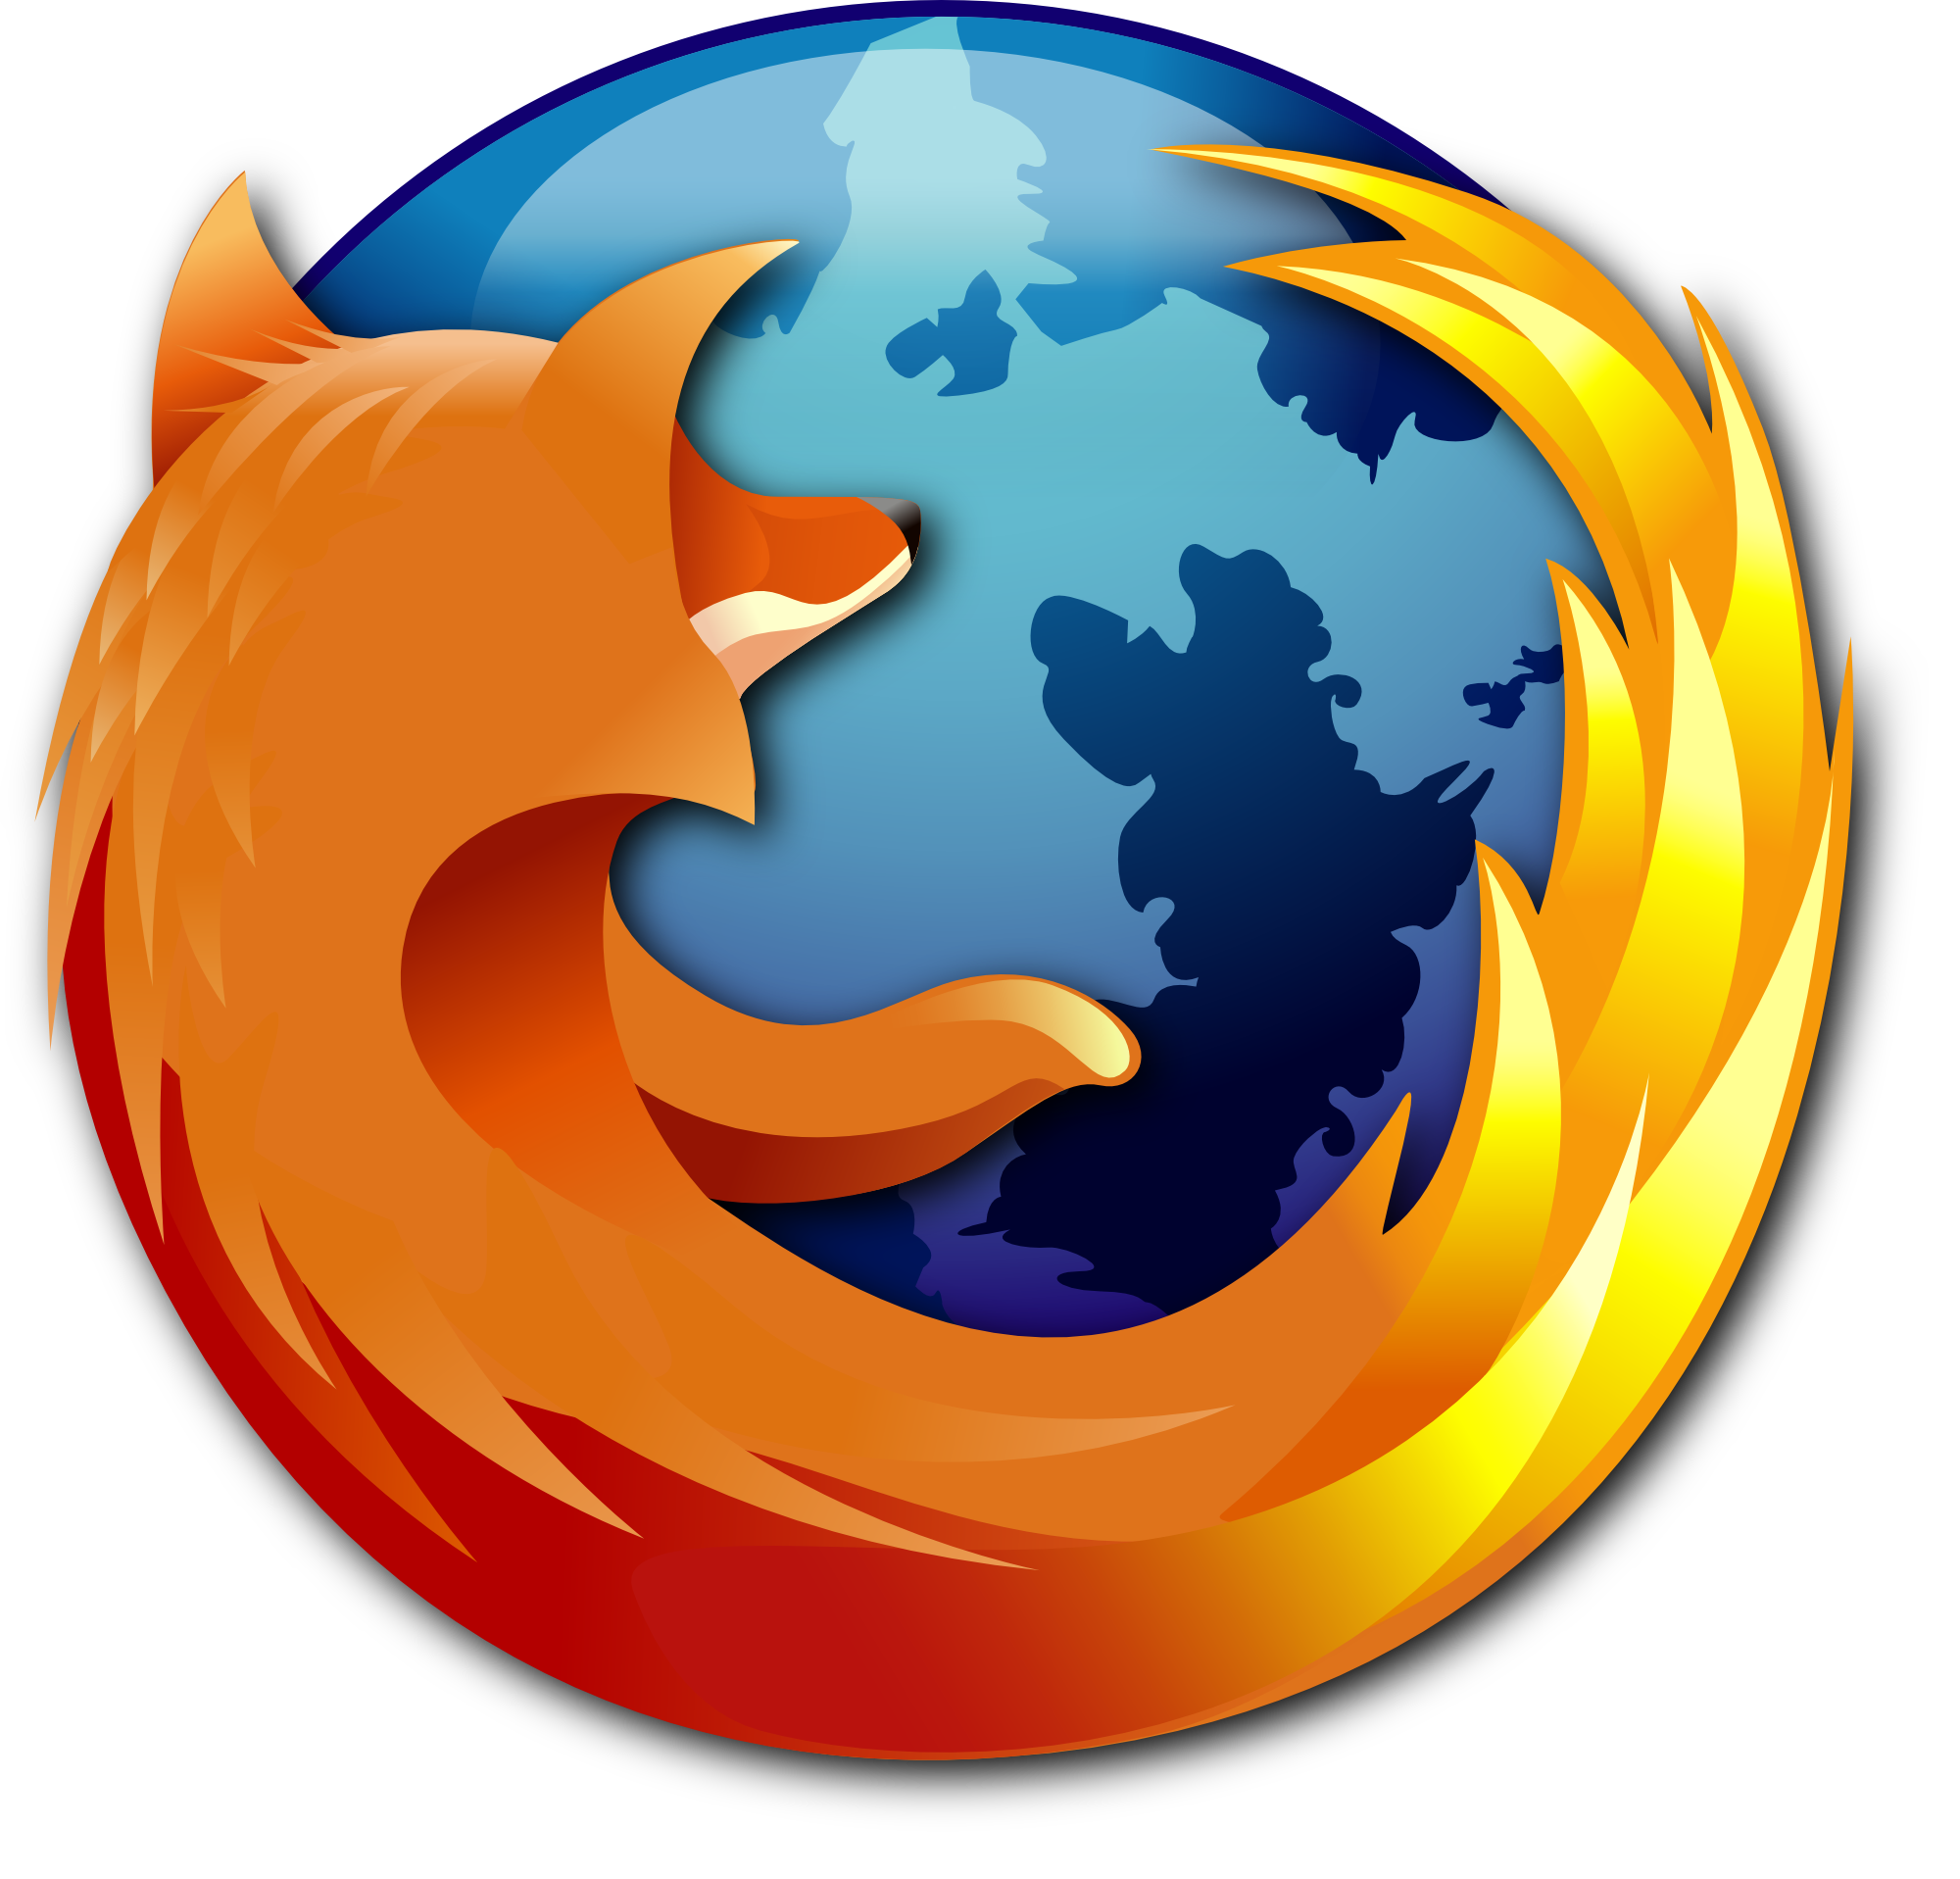 Firefox drawing sad